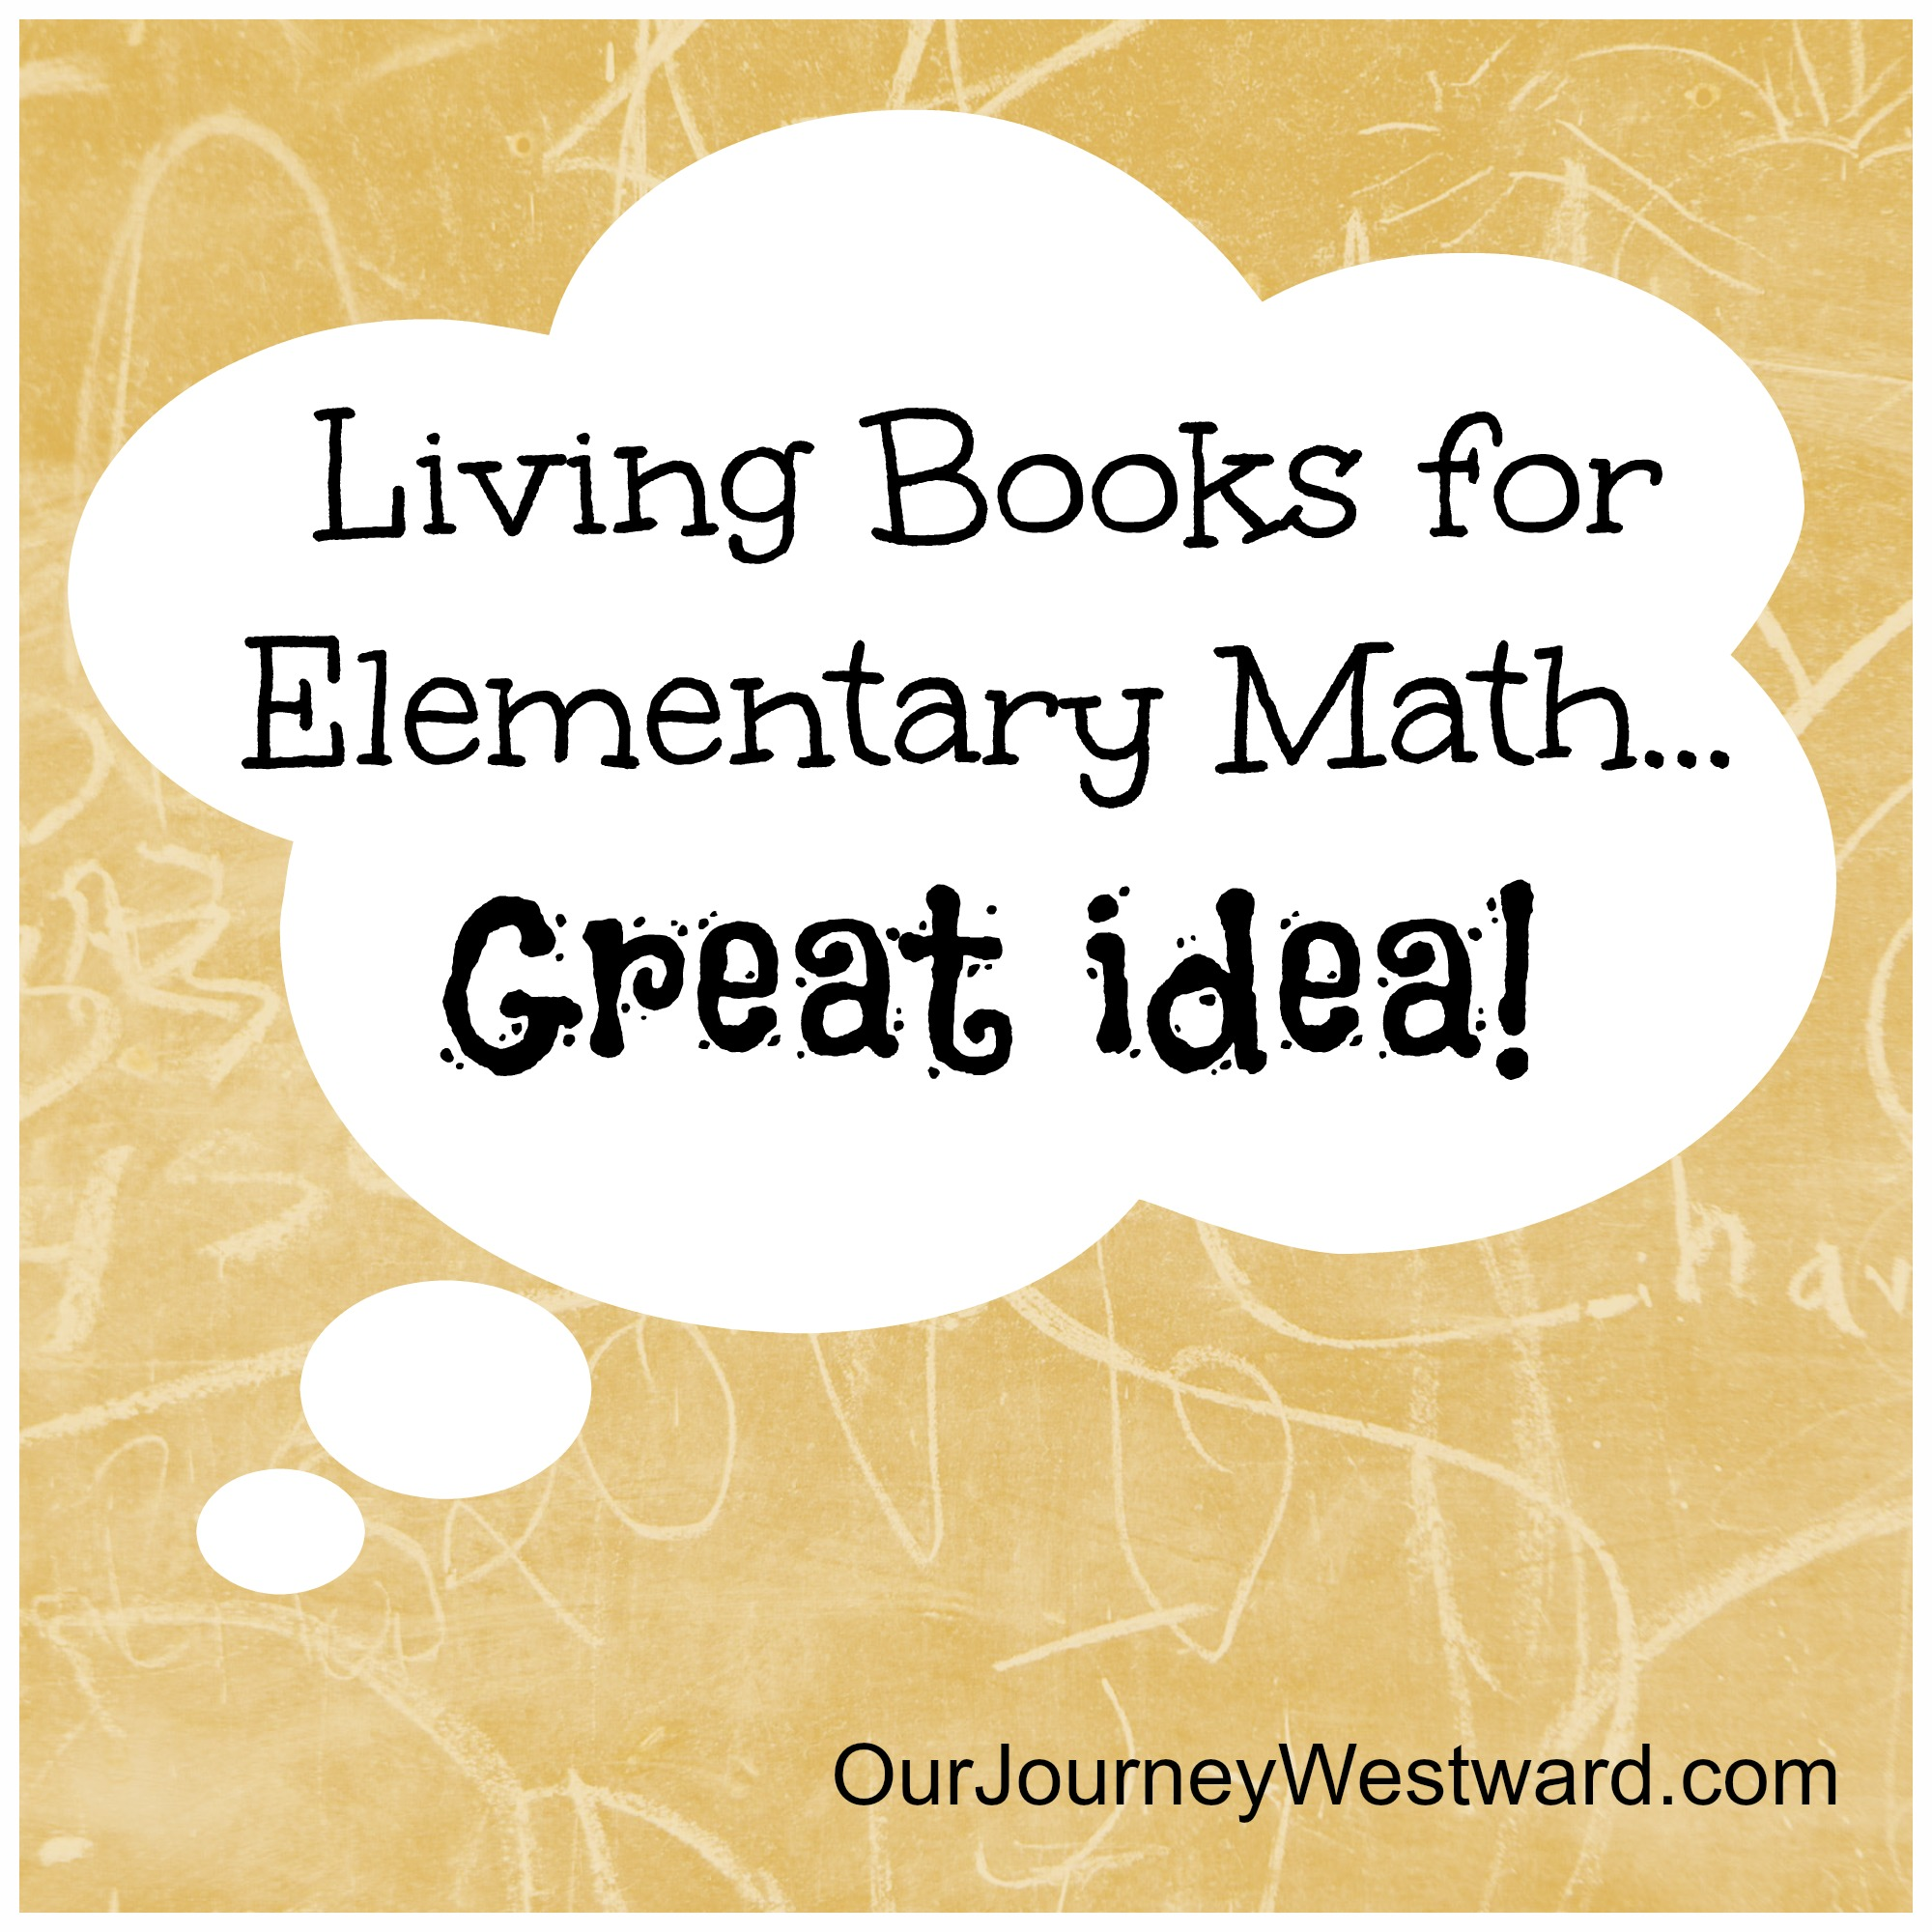 10 Living Books for Elementary Math